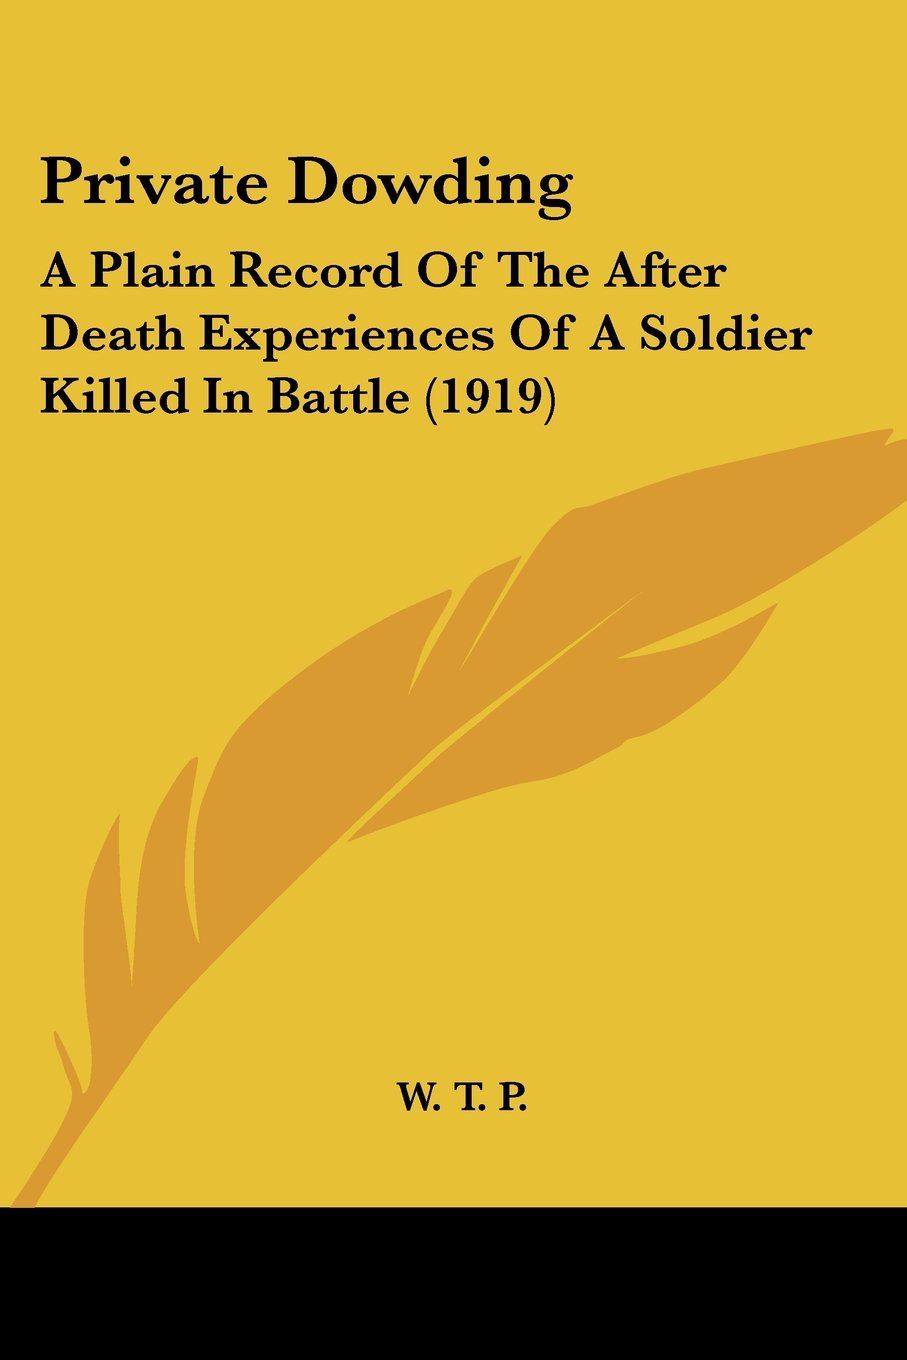 Private Dowding: A Plain Record Of The After Death Experiences Of A Soldier Killed In Battle (1919) PDF